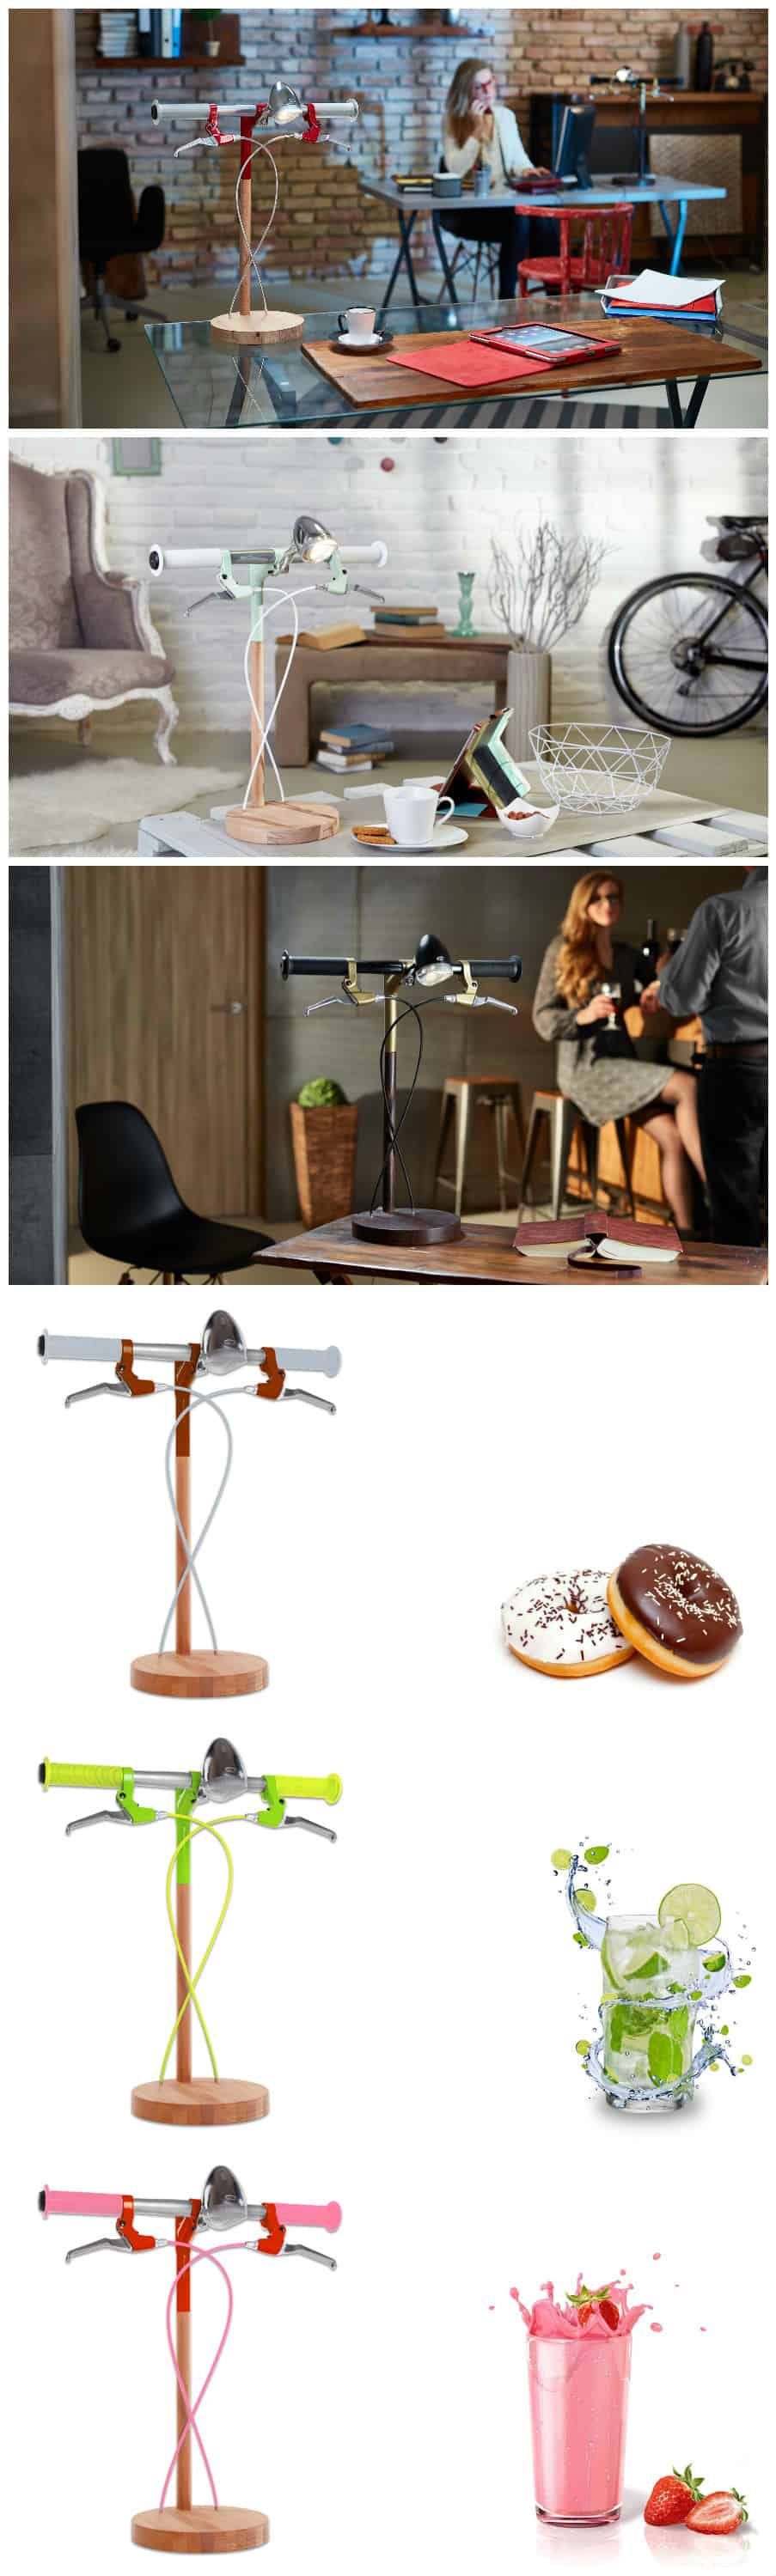 bike me home u2013 industrial kid desk lamps bring cycling obsession to your desk u2022 recyclart